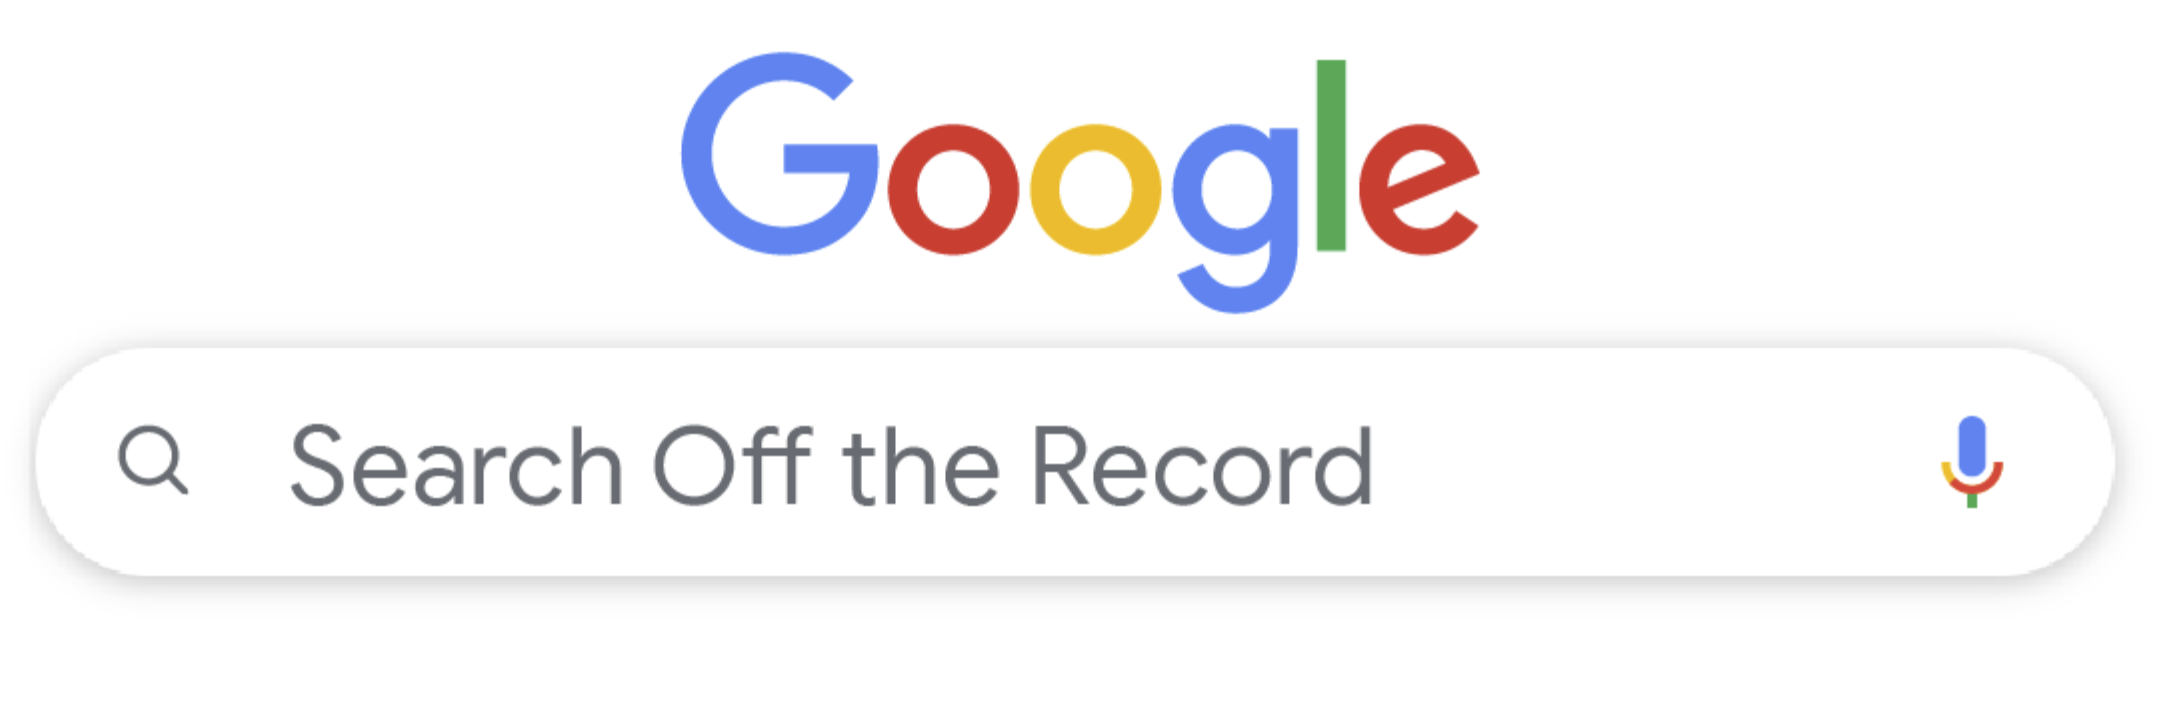 Google Search Off the Record